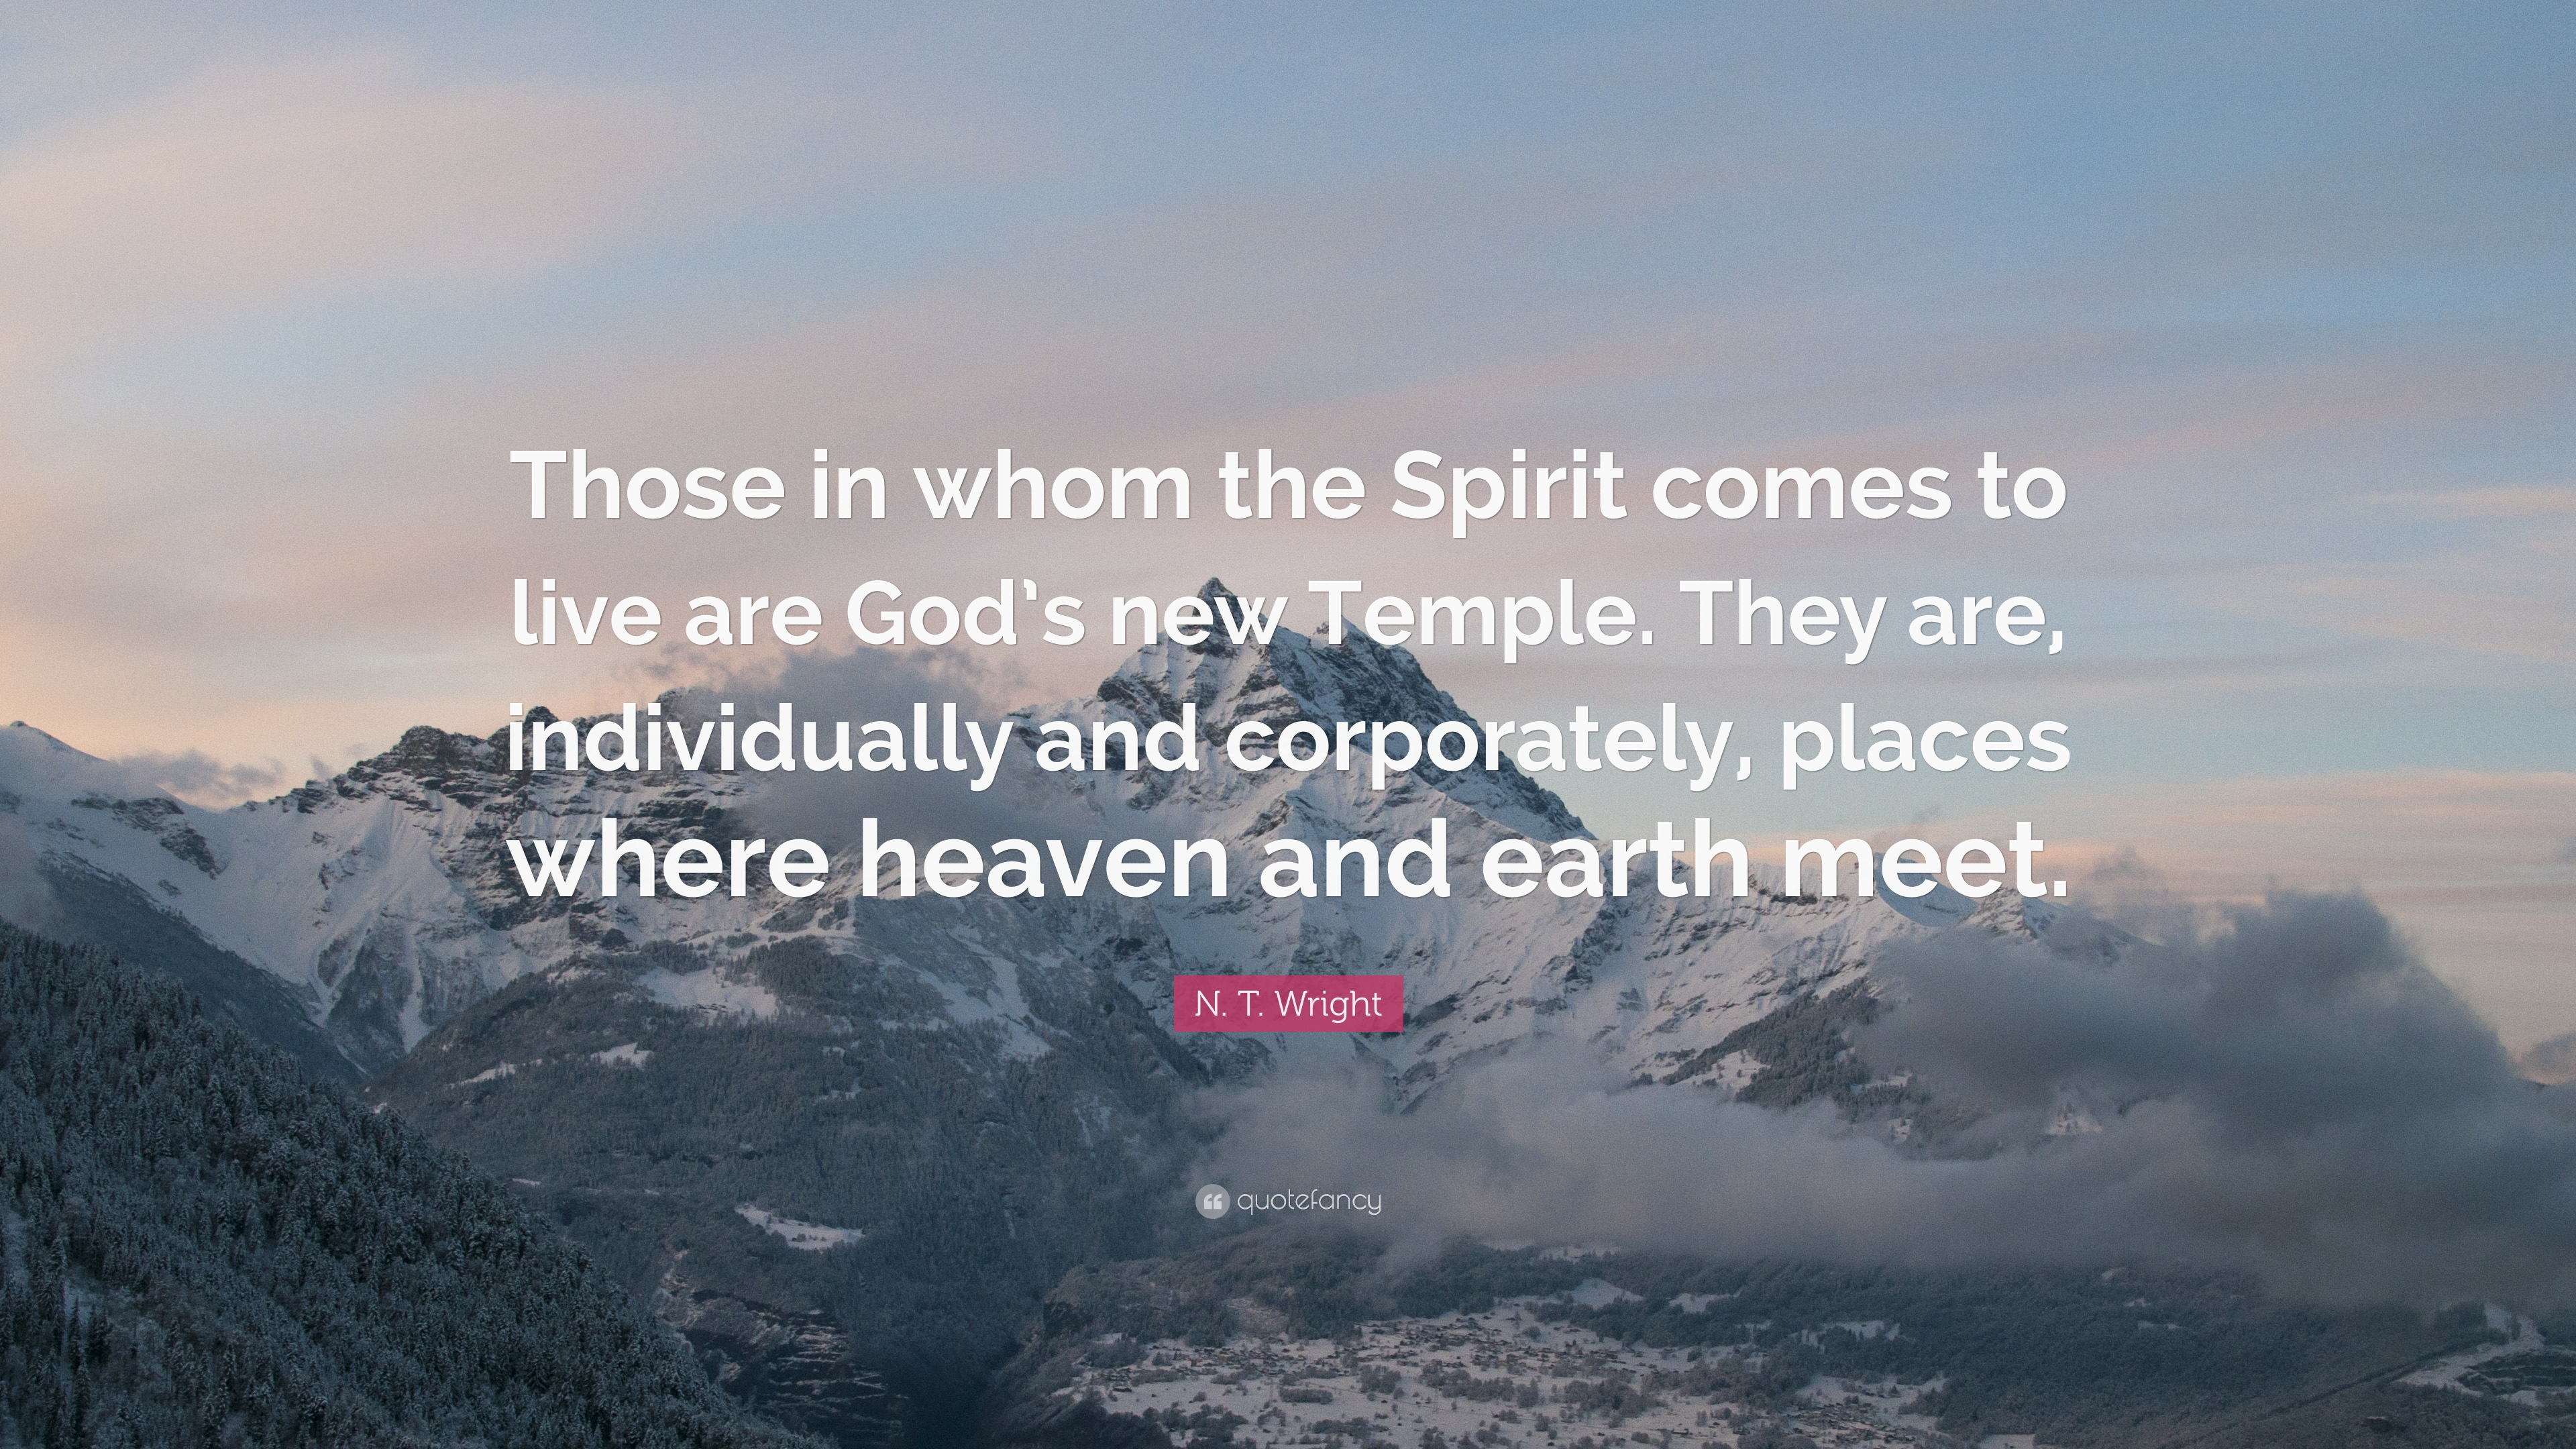 385648-N-T-Wright-Quote-Those-in-whom-the-Spirit-comes-to-live-are-God-s.jpg